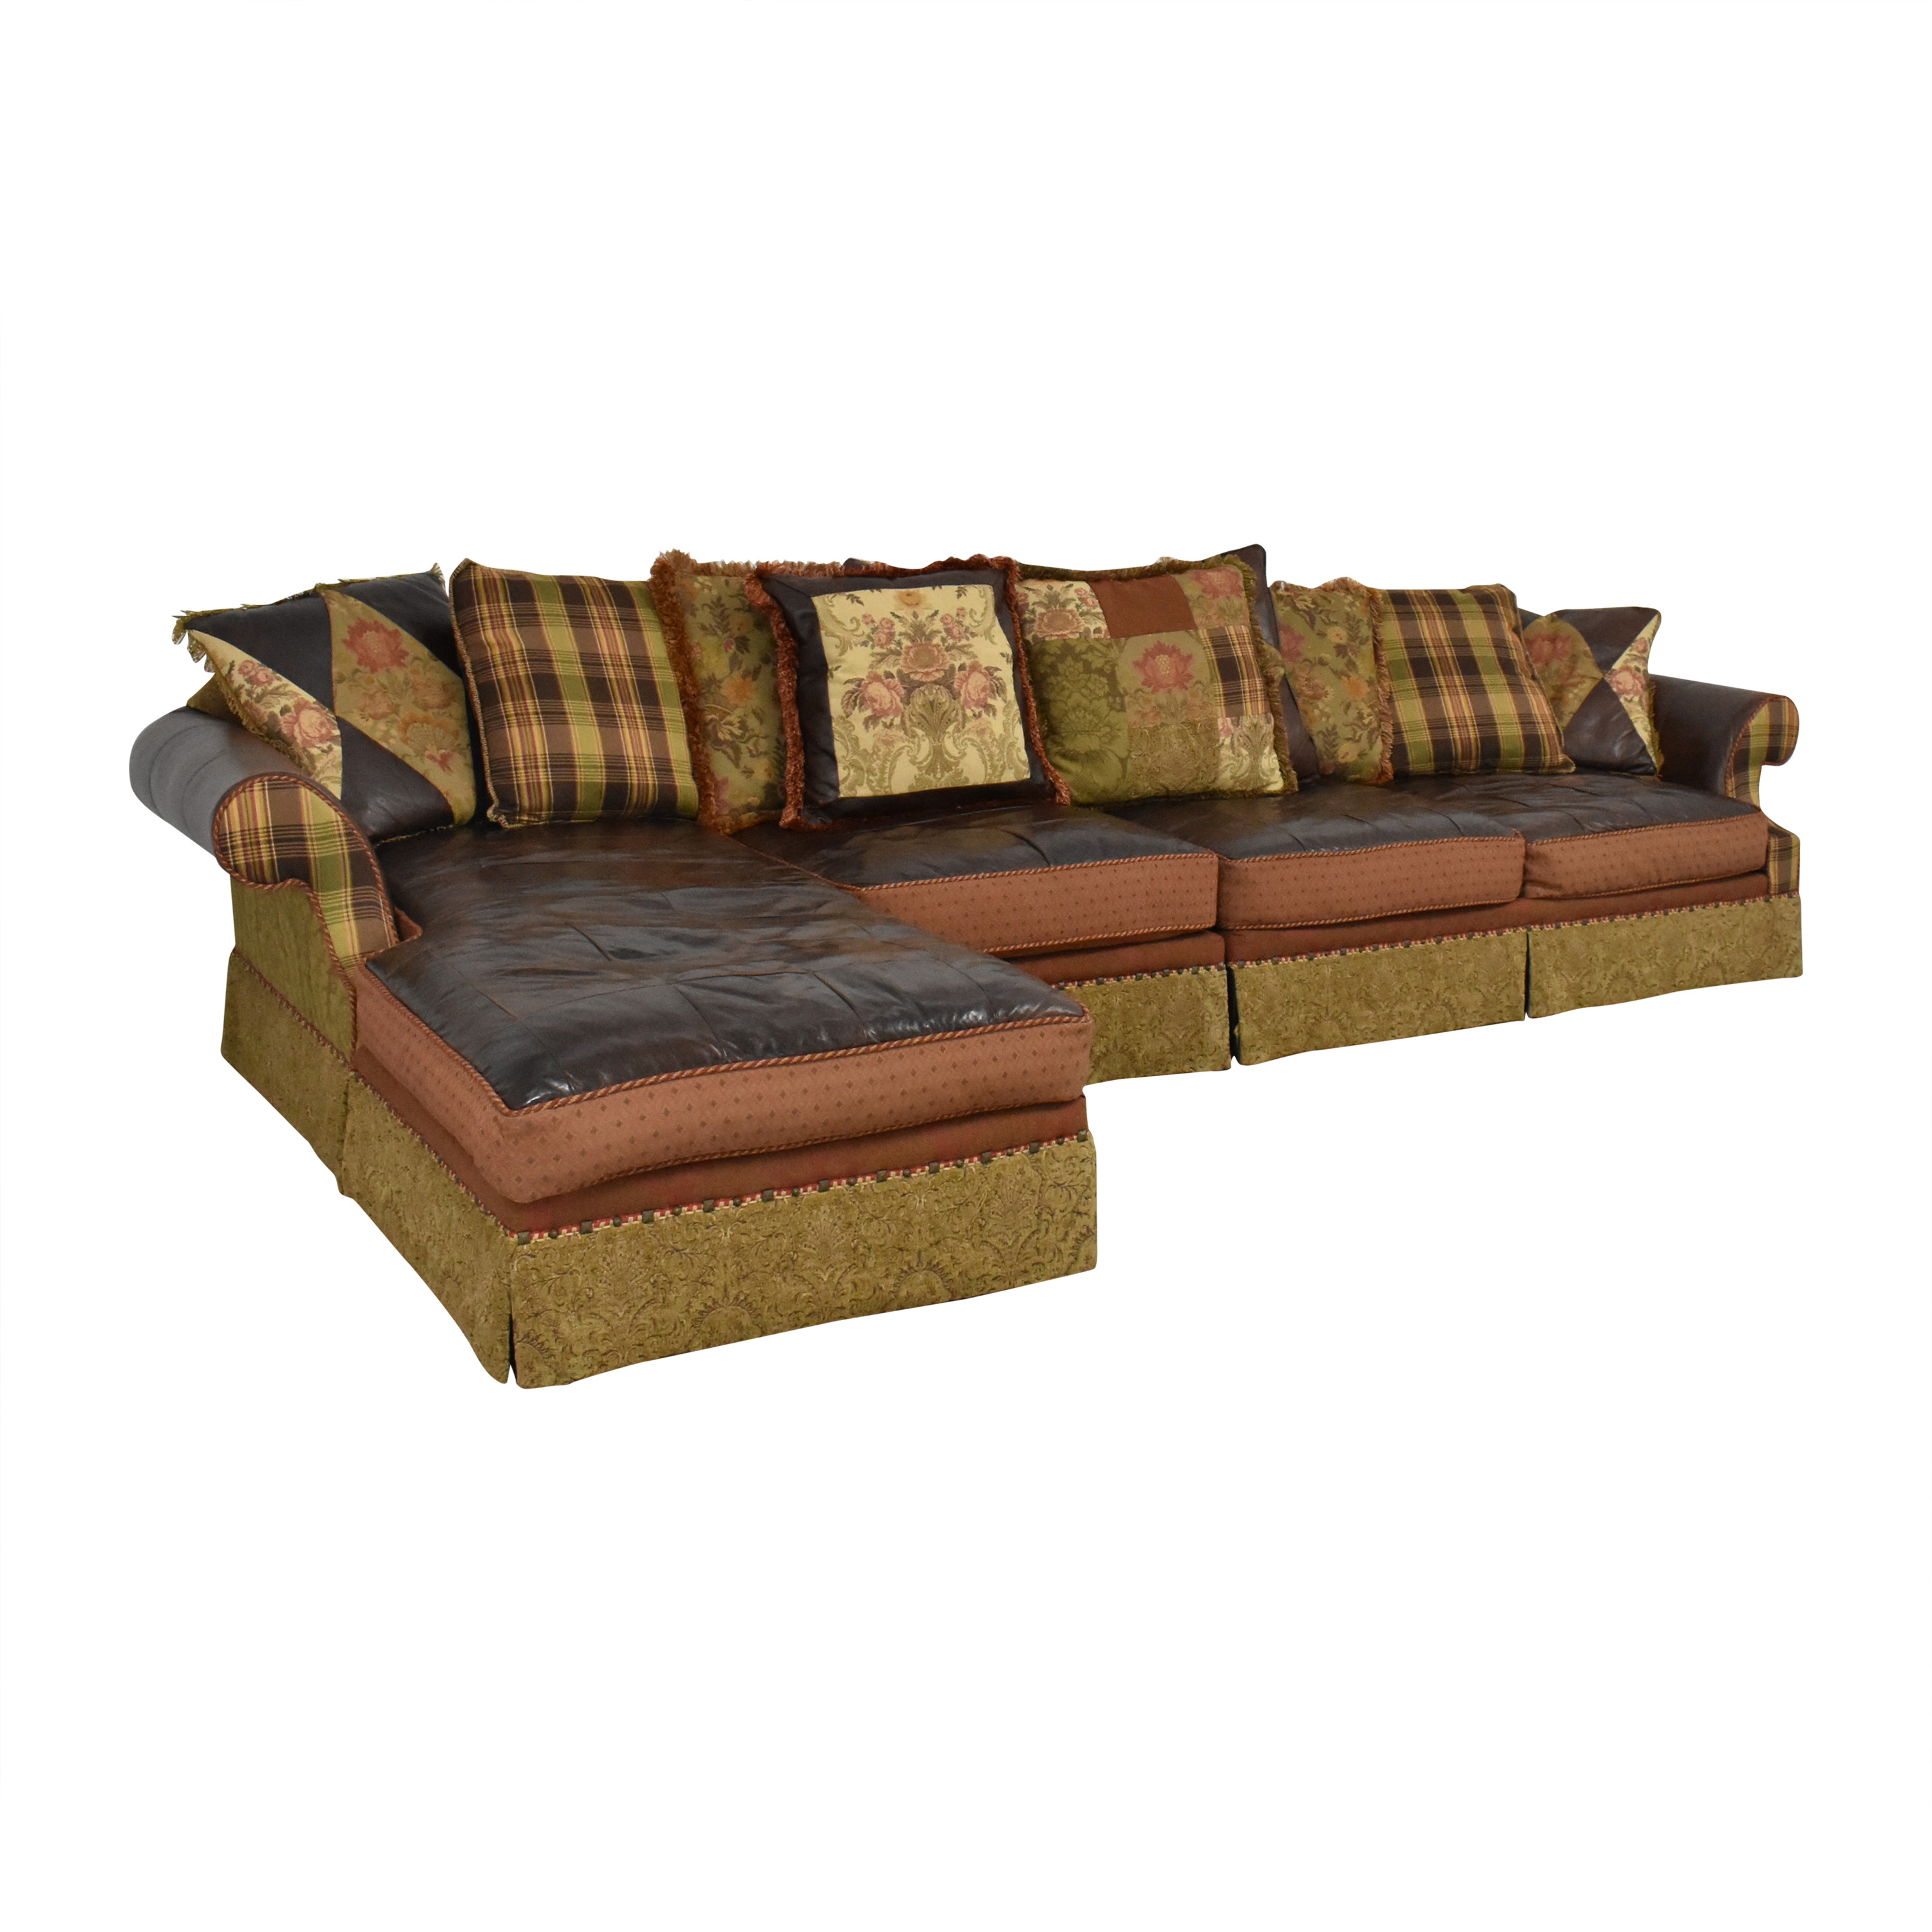 Key City Furniture Key City Jeff Zimmerman Collection Mixed Media Sectional used